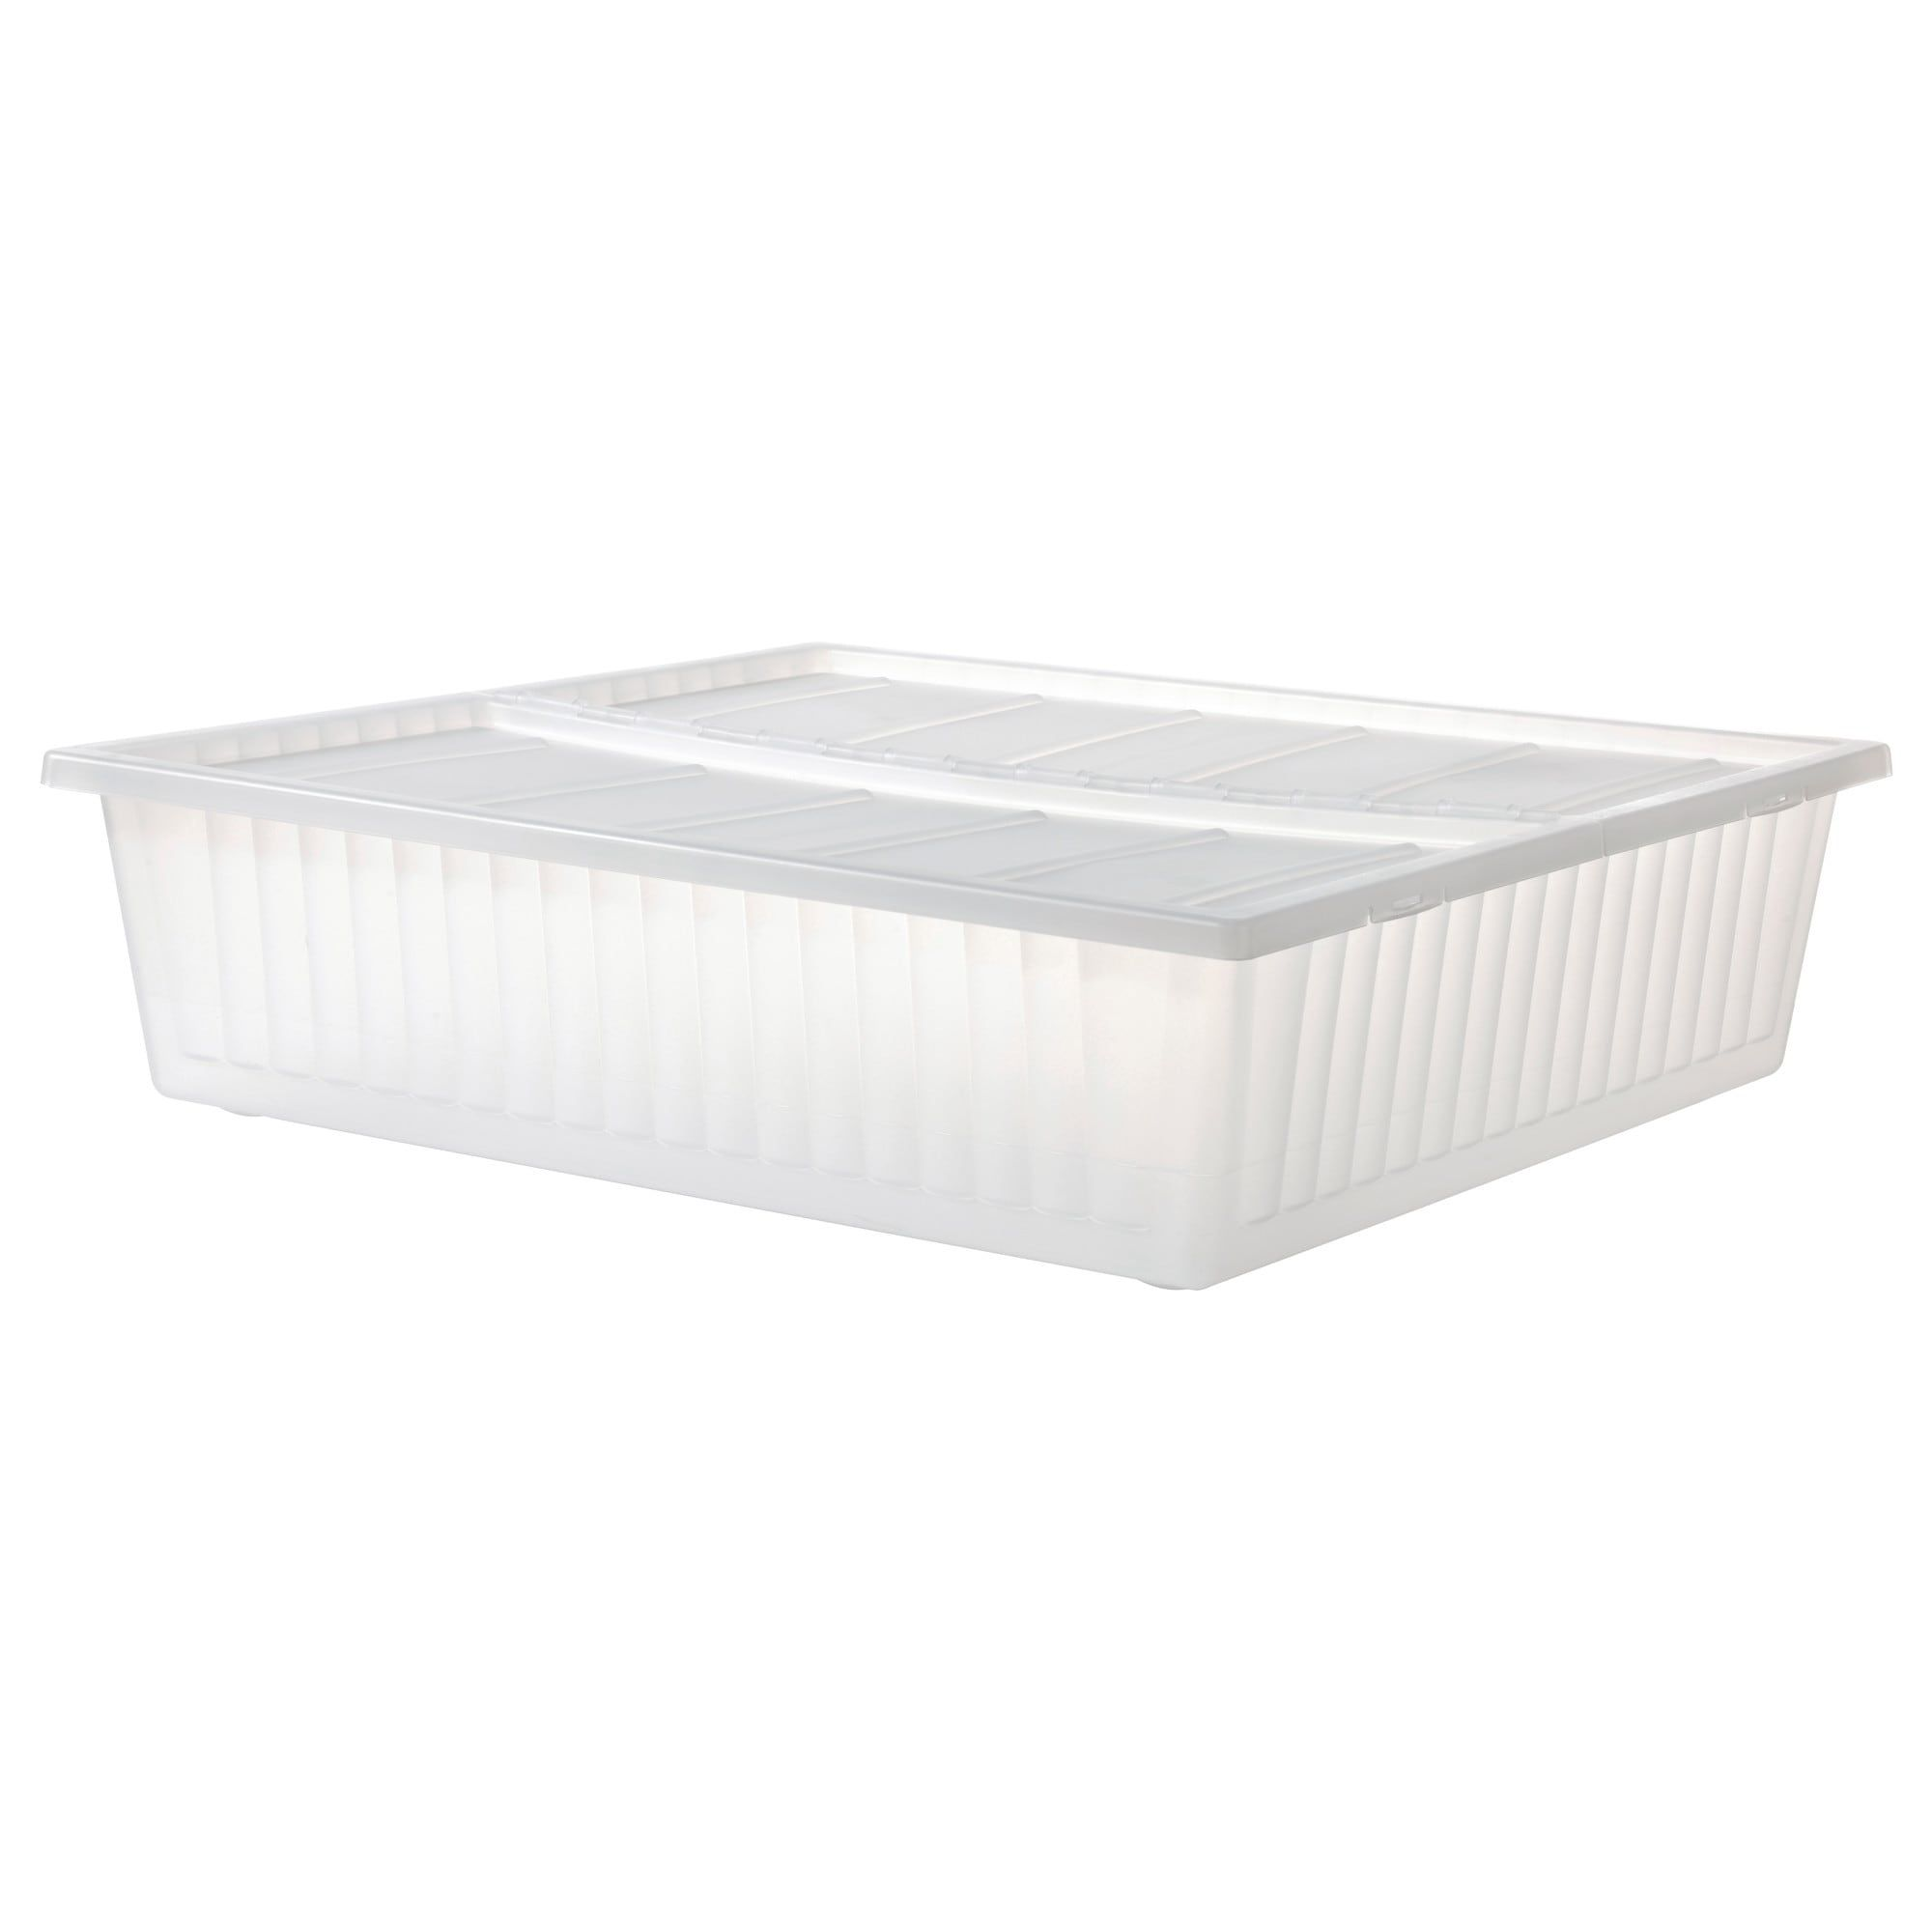 Aufbewahrungsbox Ikea Bett Gimse Underbed Storage Box Ikea Ikea Bed Storage Bed Under